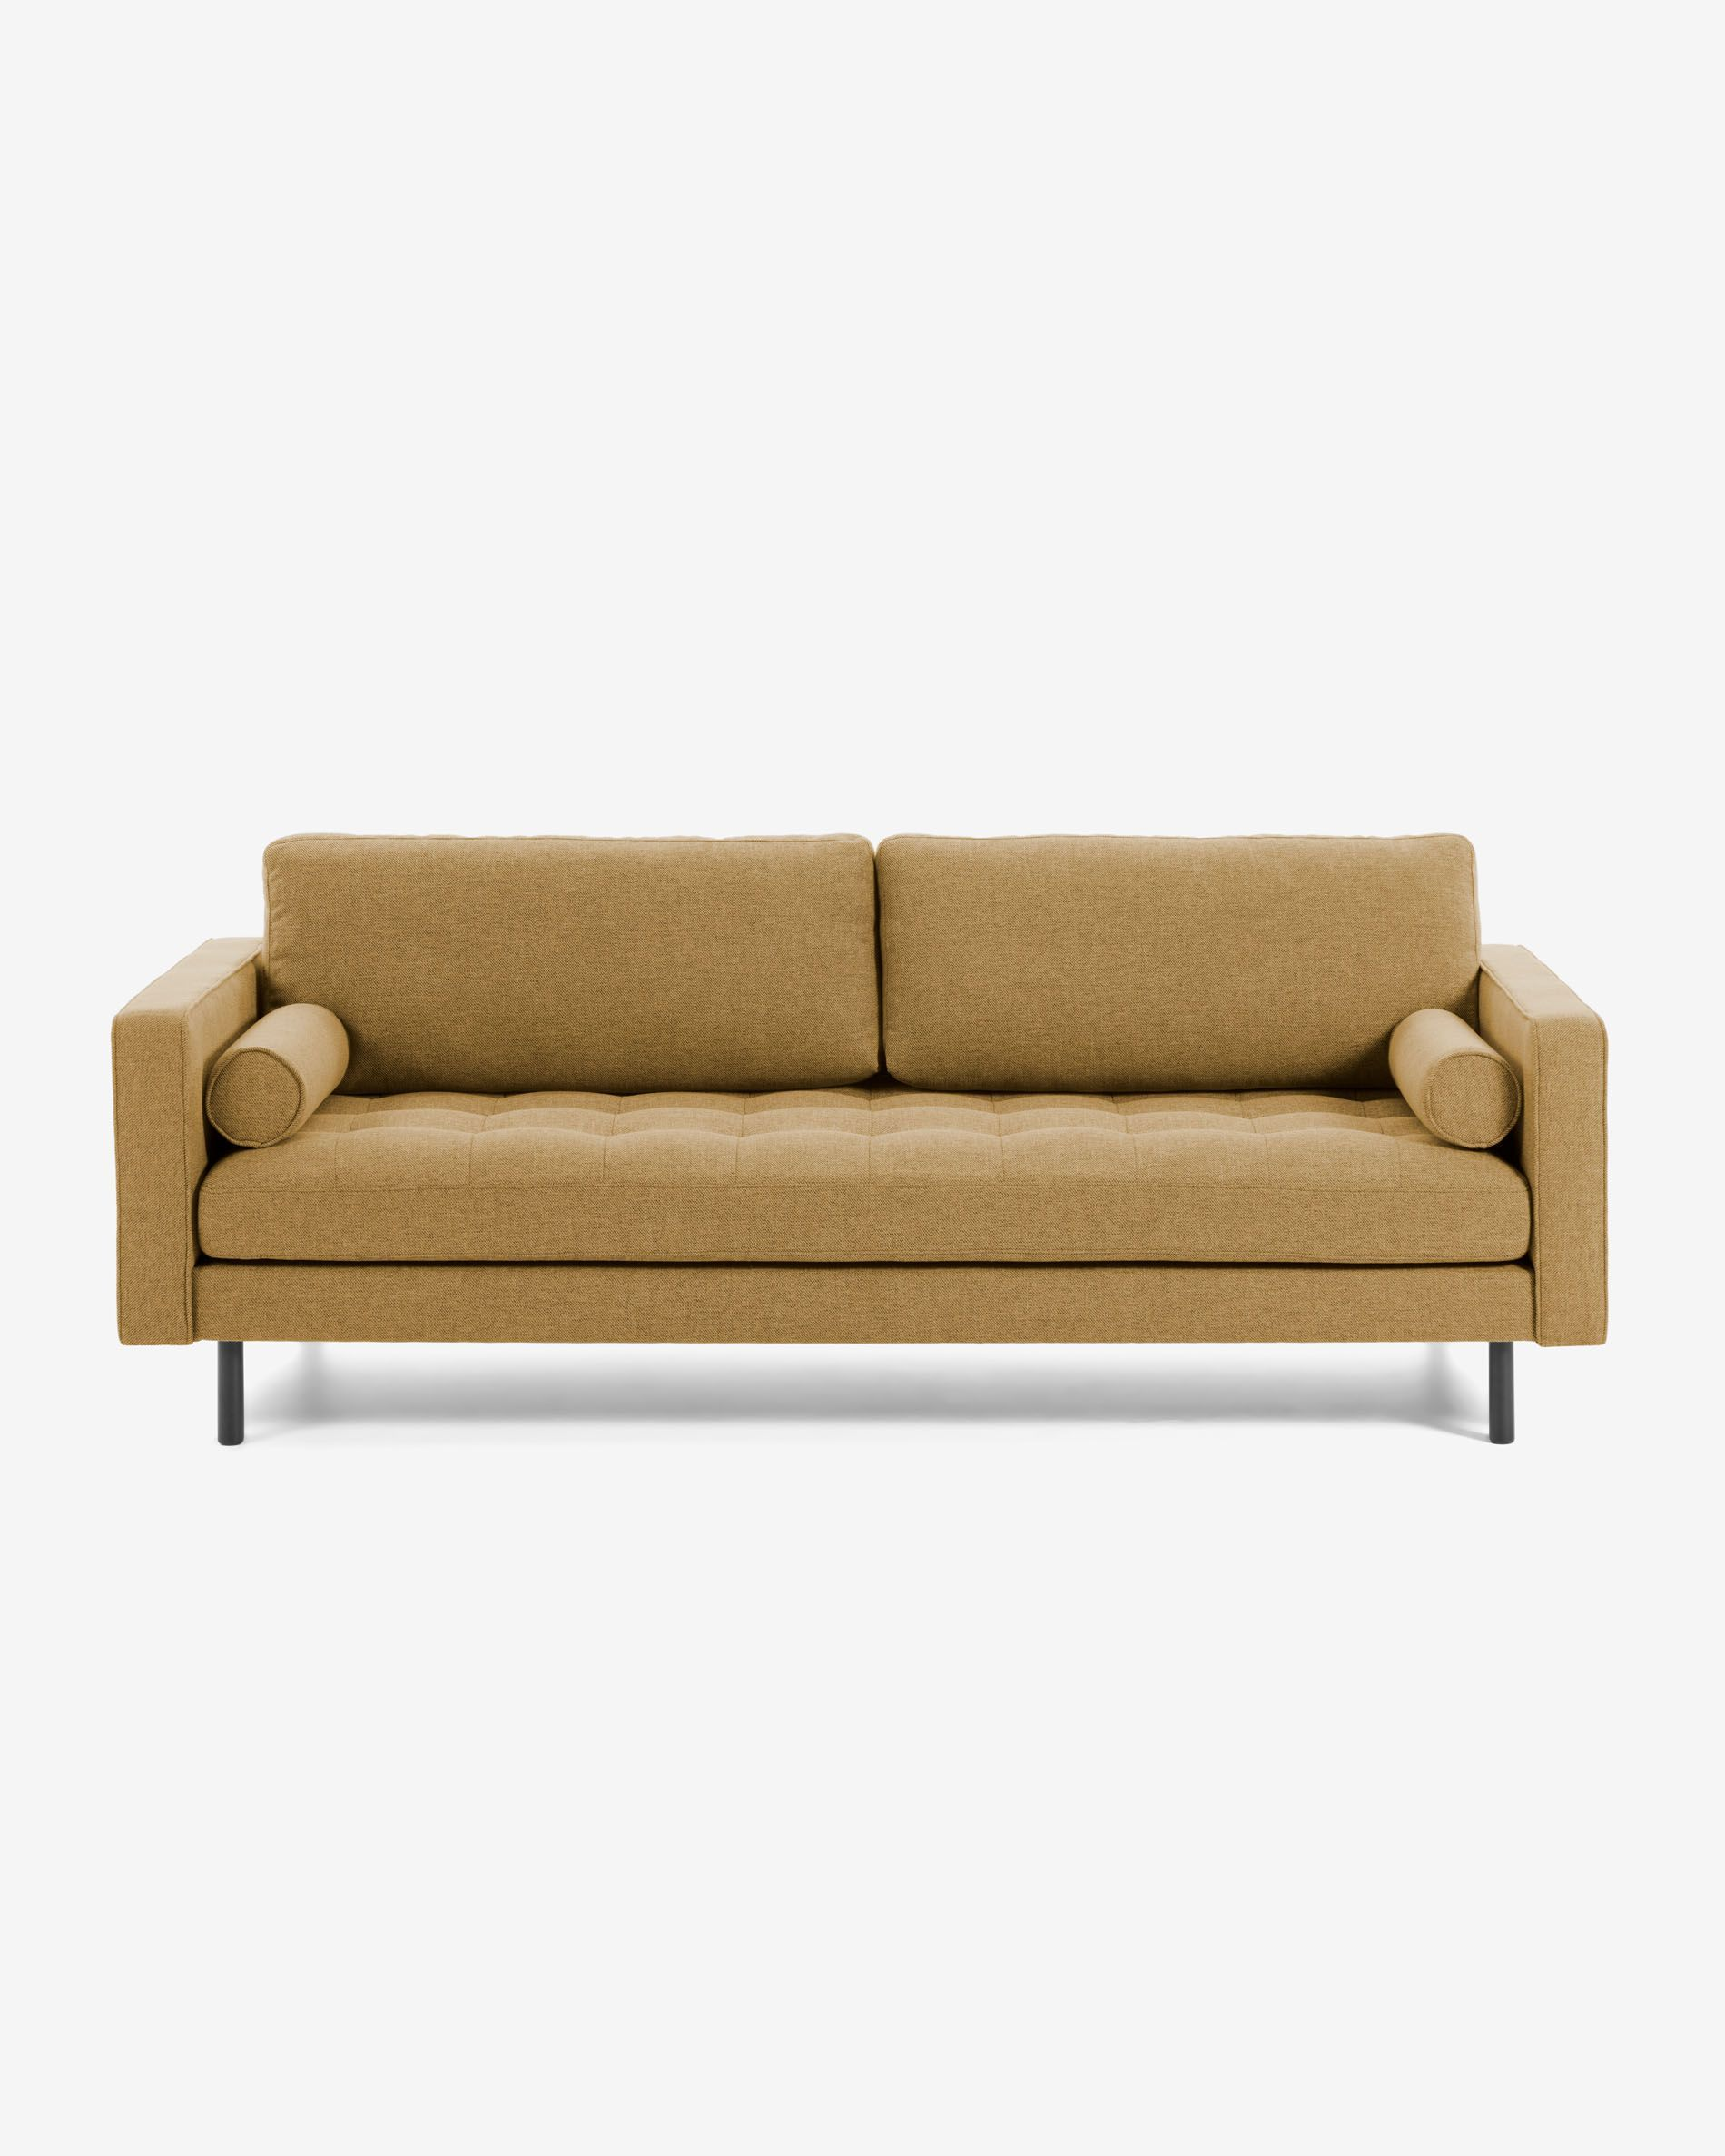 Awesome Where To Buy Couches For Cheap In 2020 Buy Couch Cheap Couch Clean Sofa